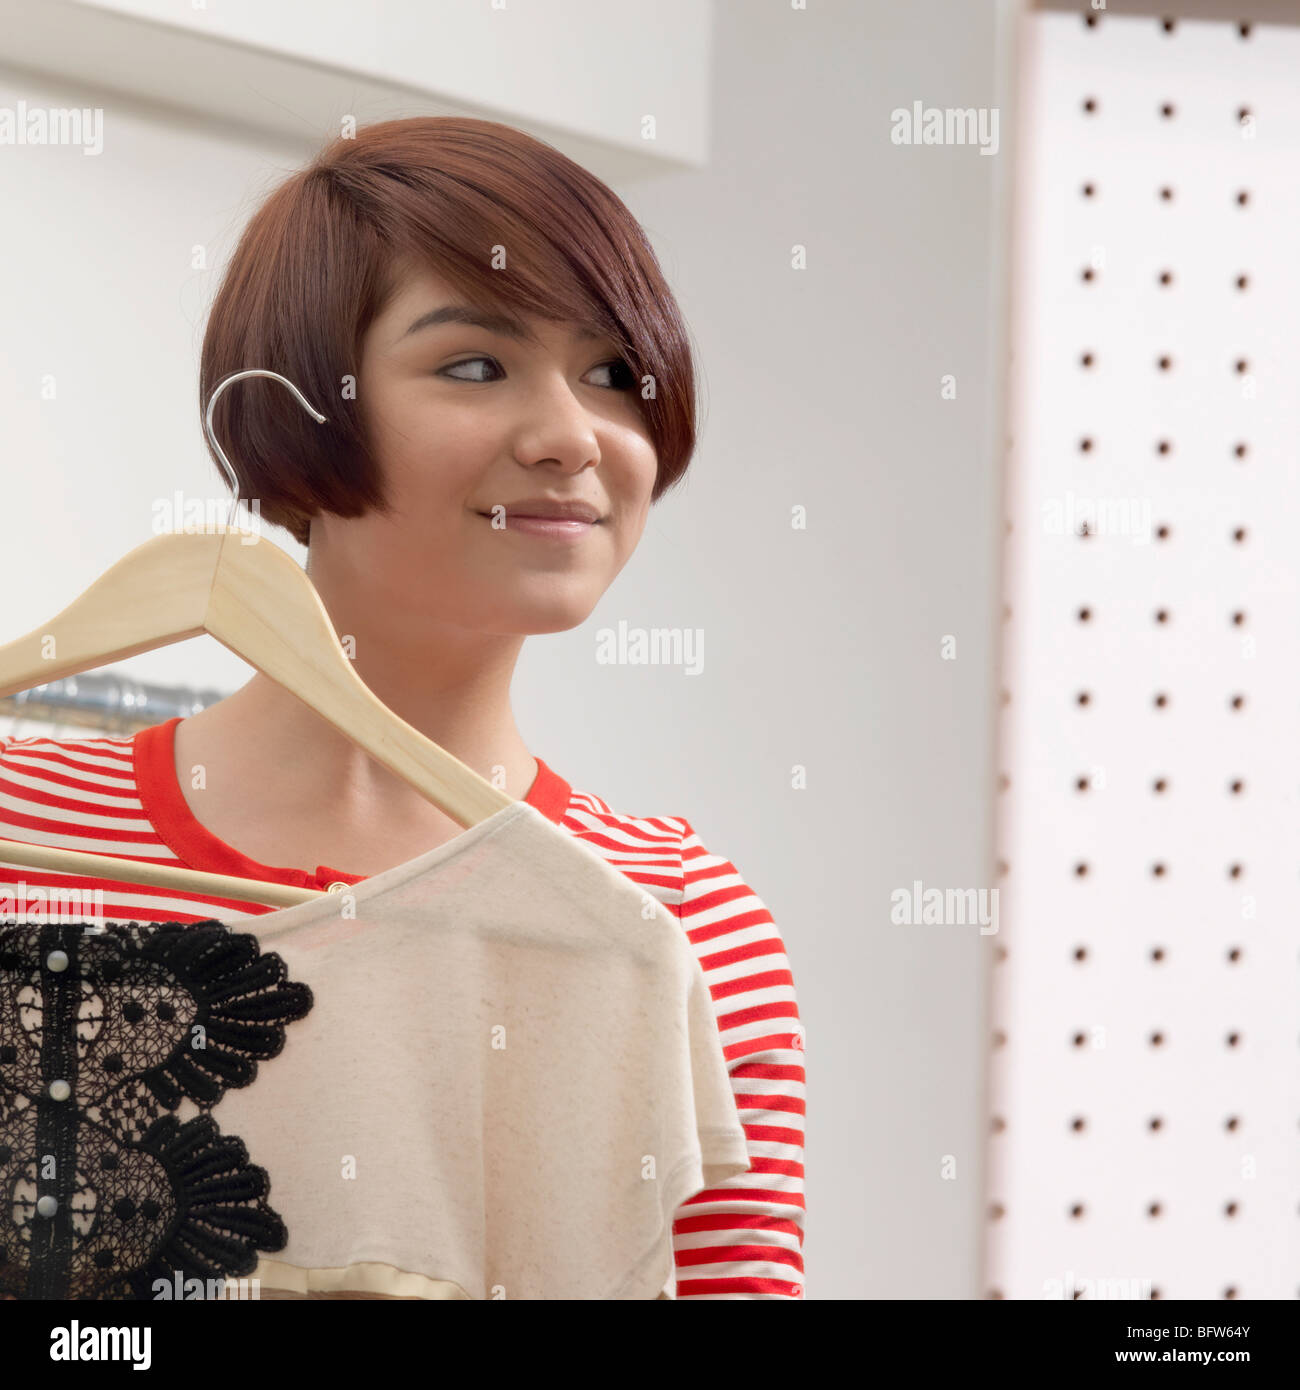 young woman holding an item of clothing - Stock Image